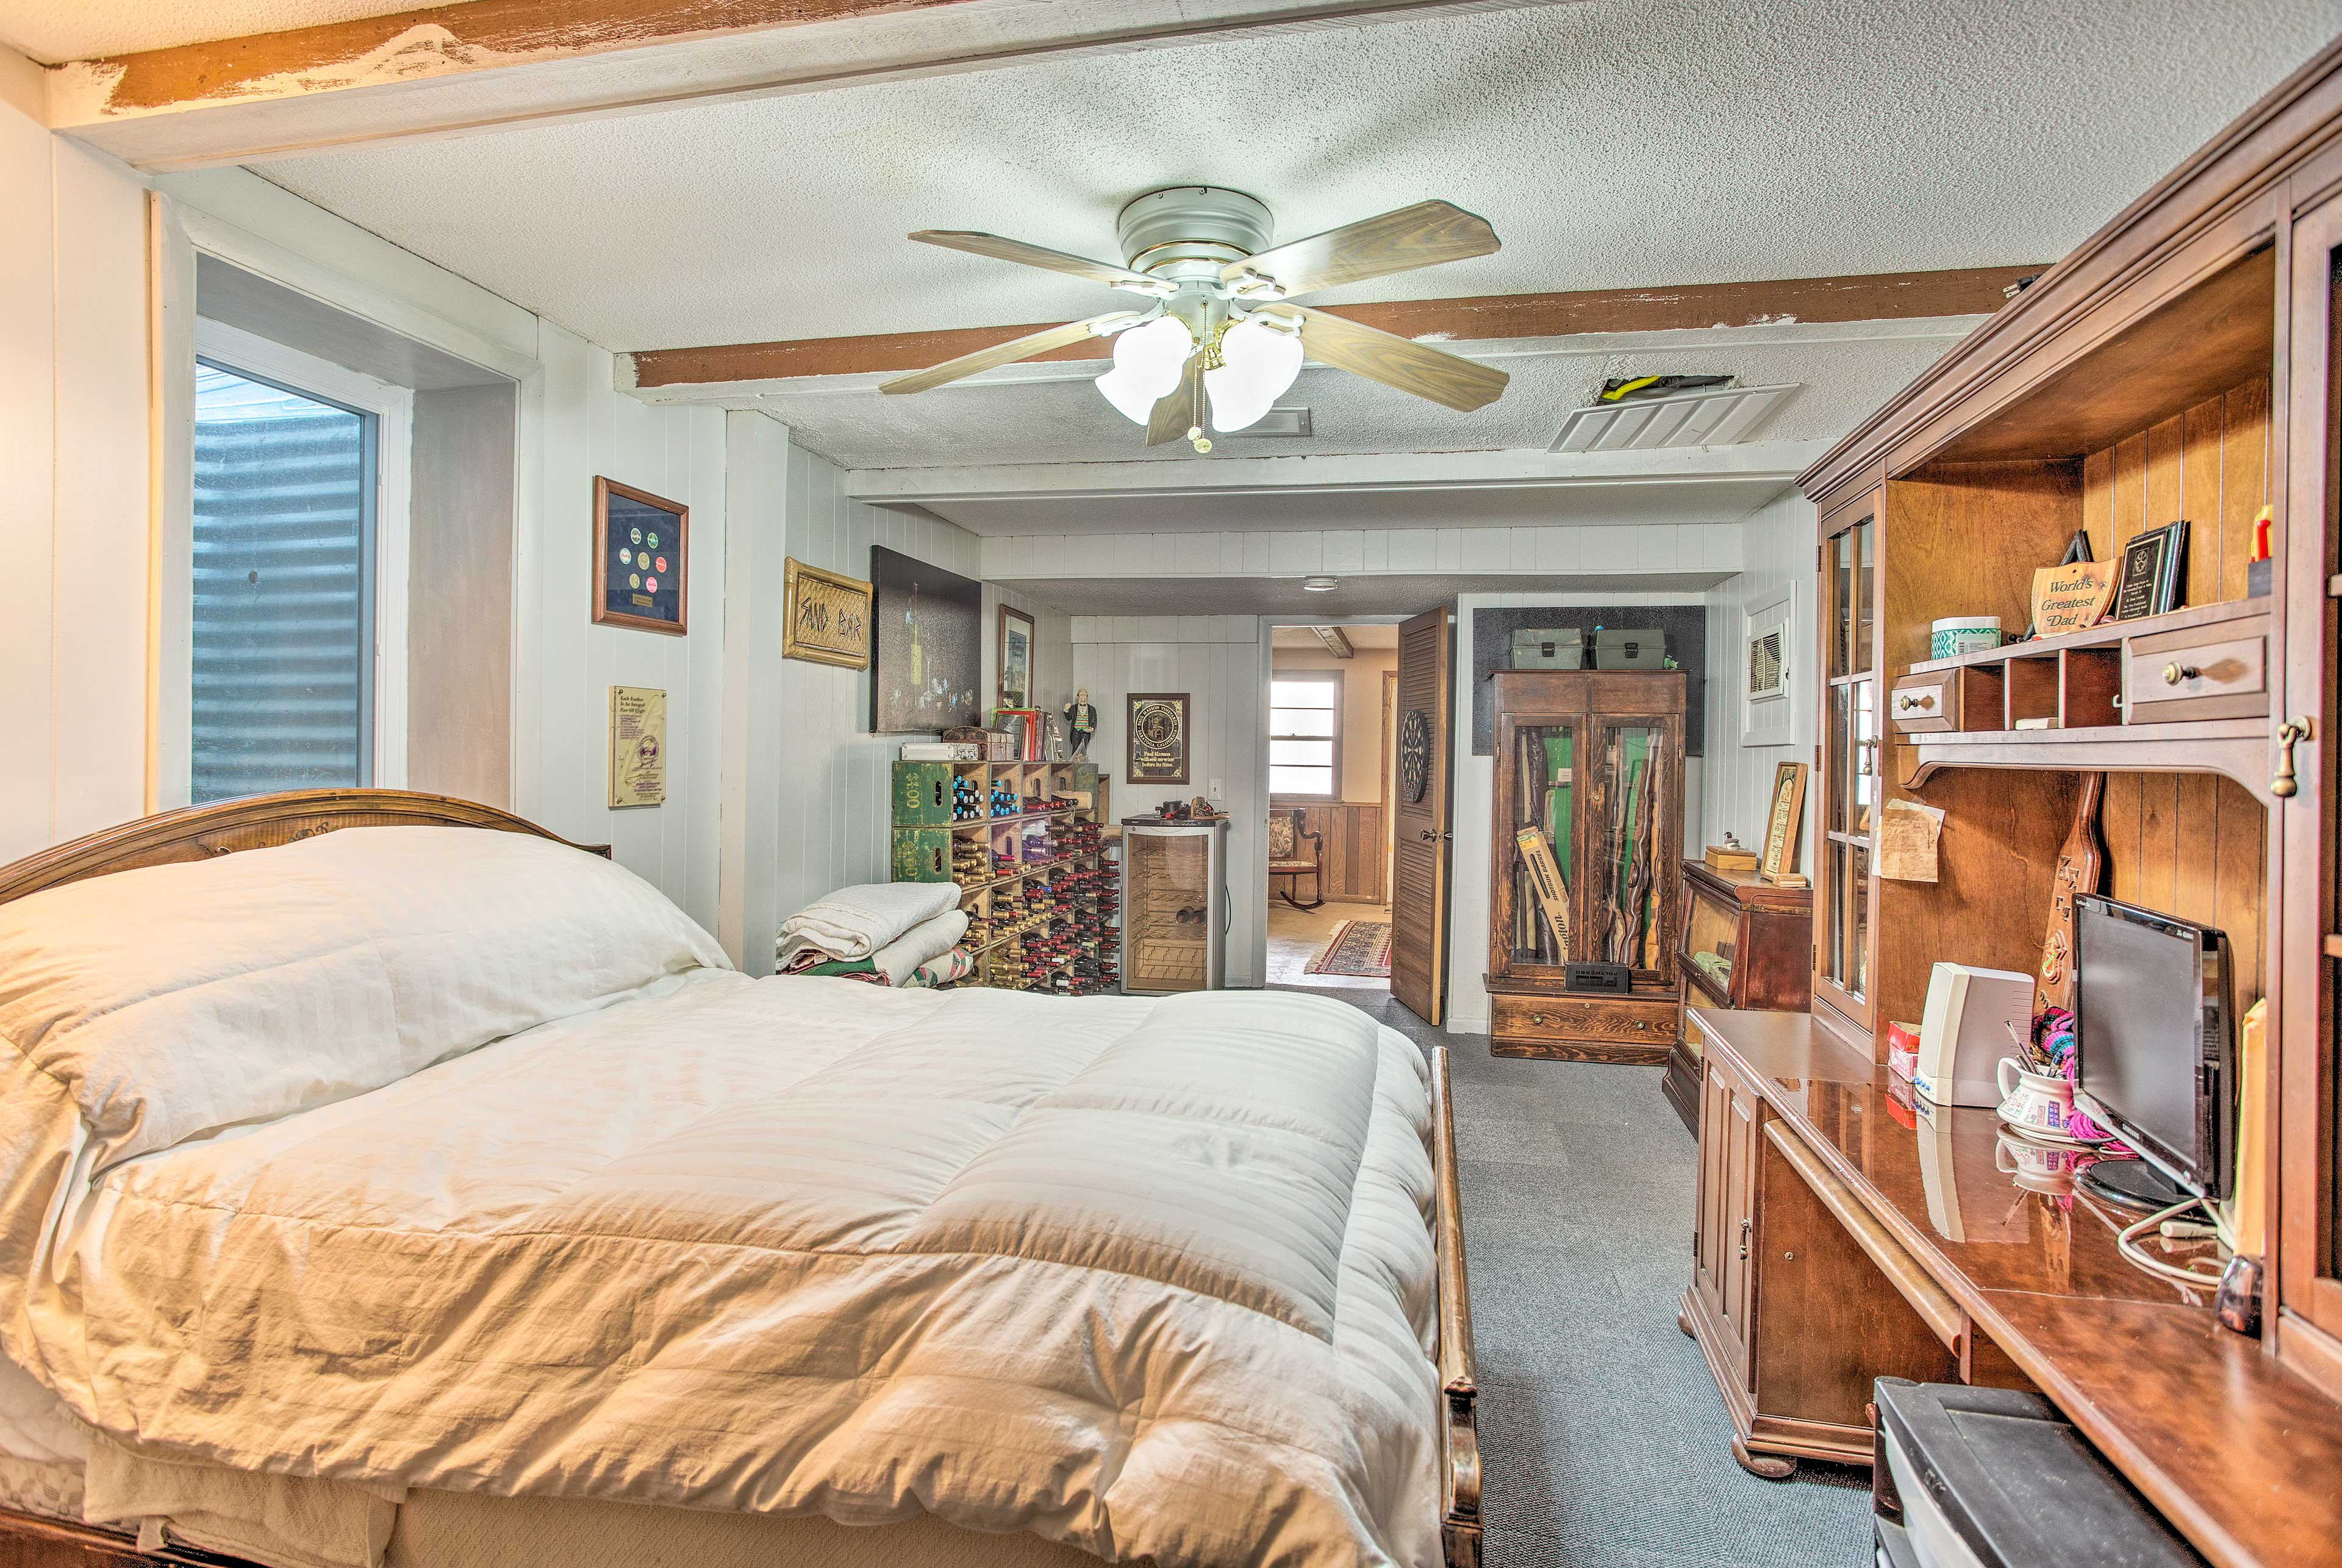 The spacious bedroom hosts a full bed and a flat-screen TV.